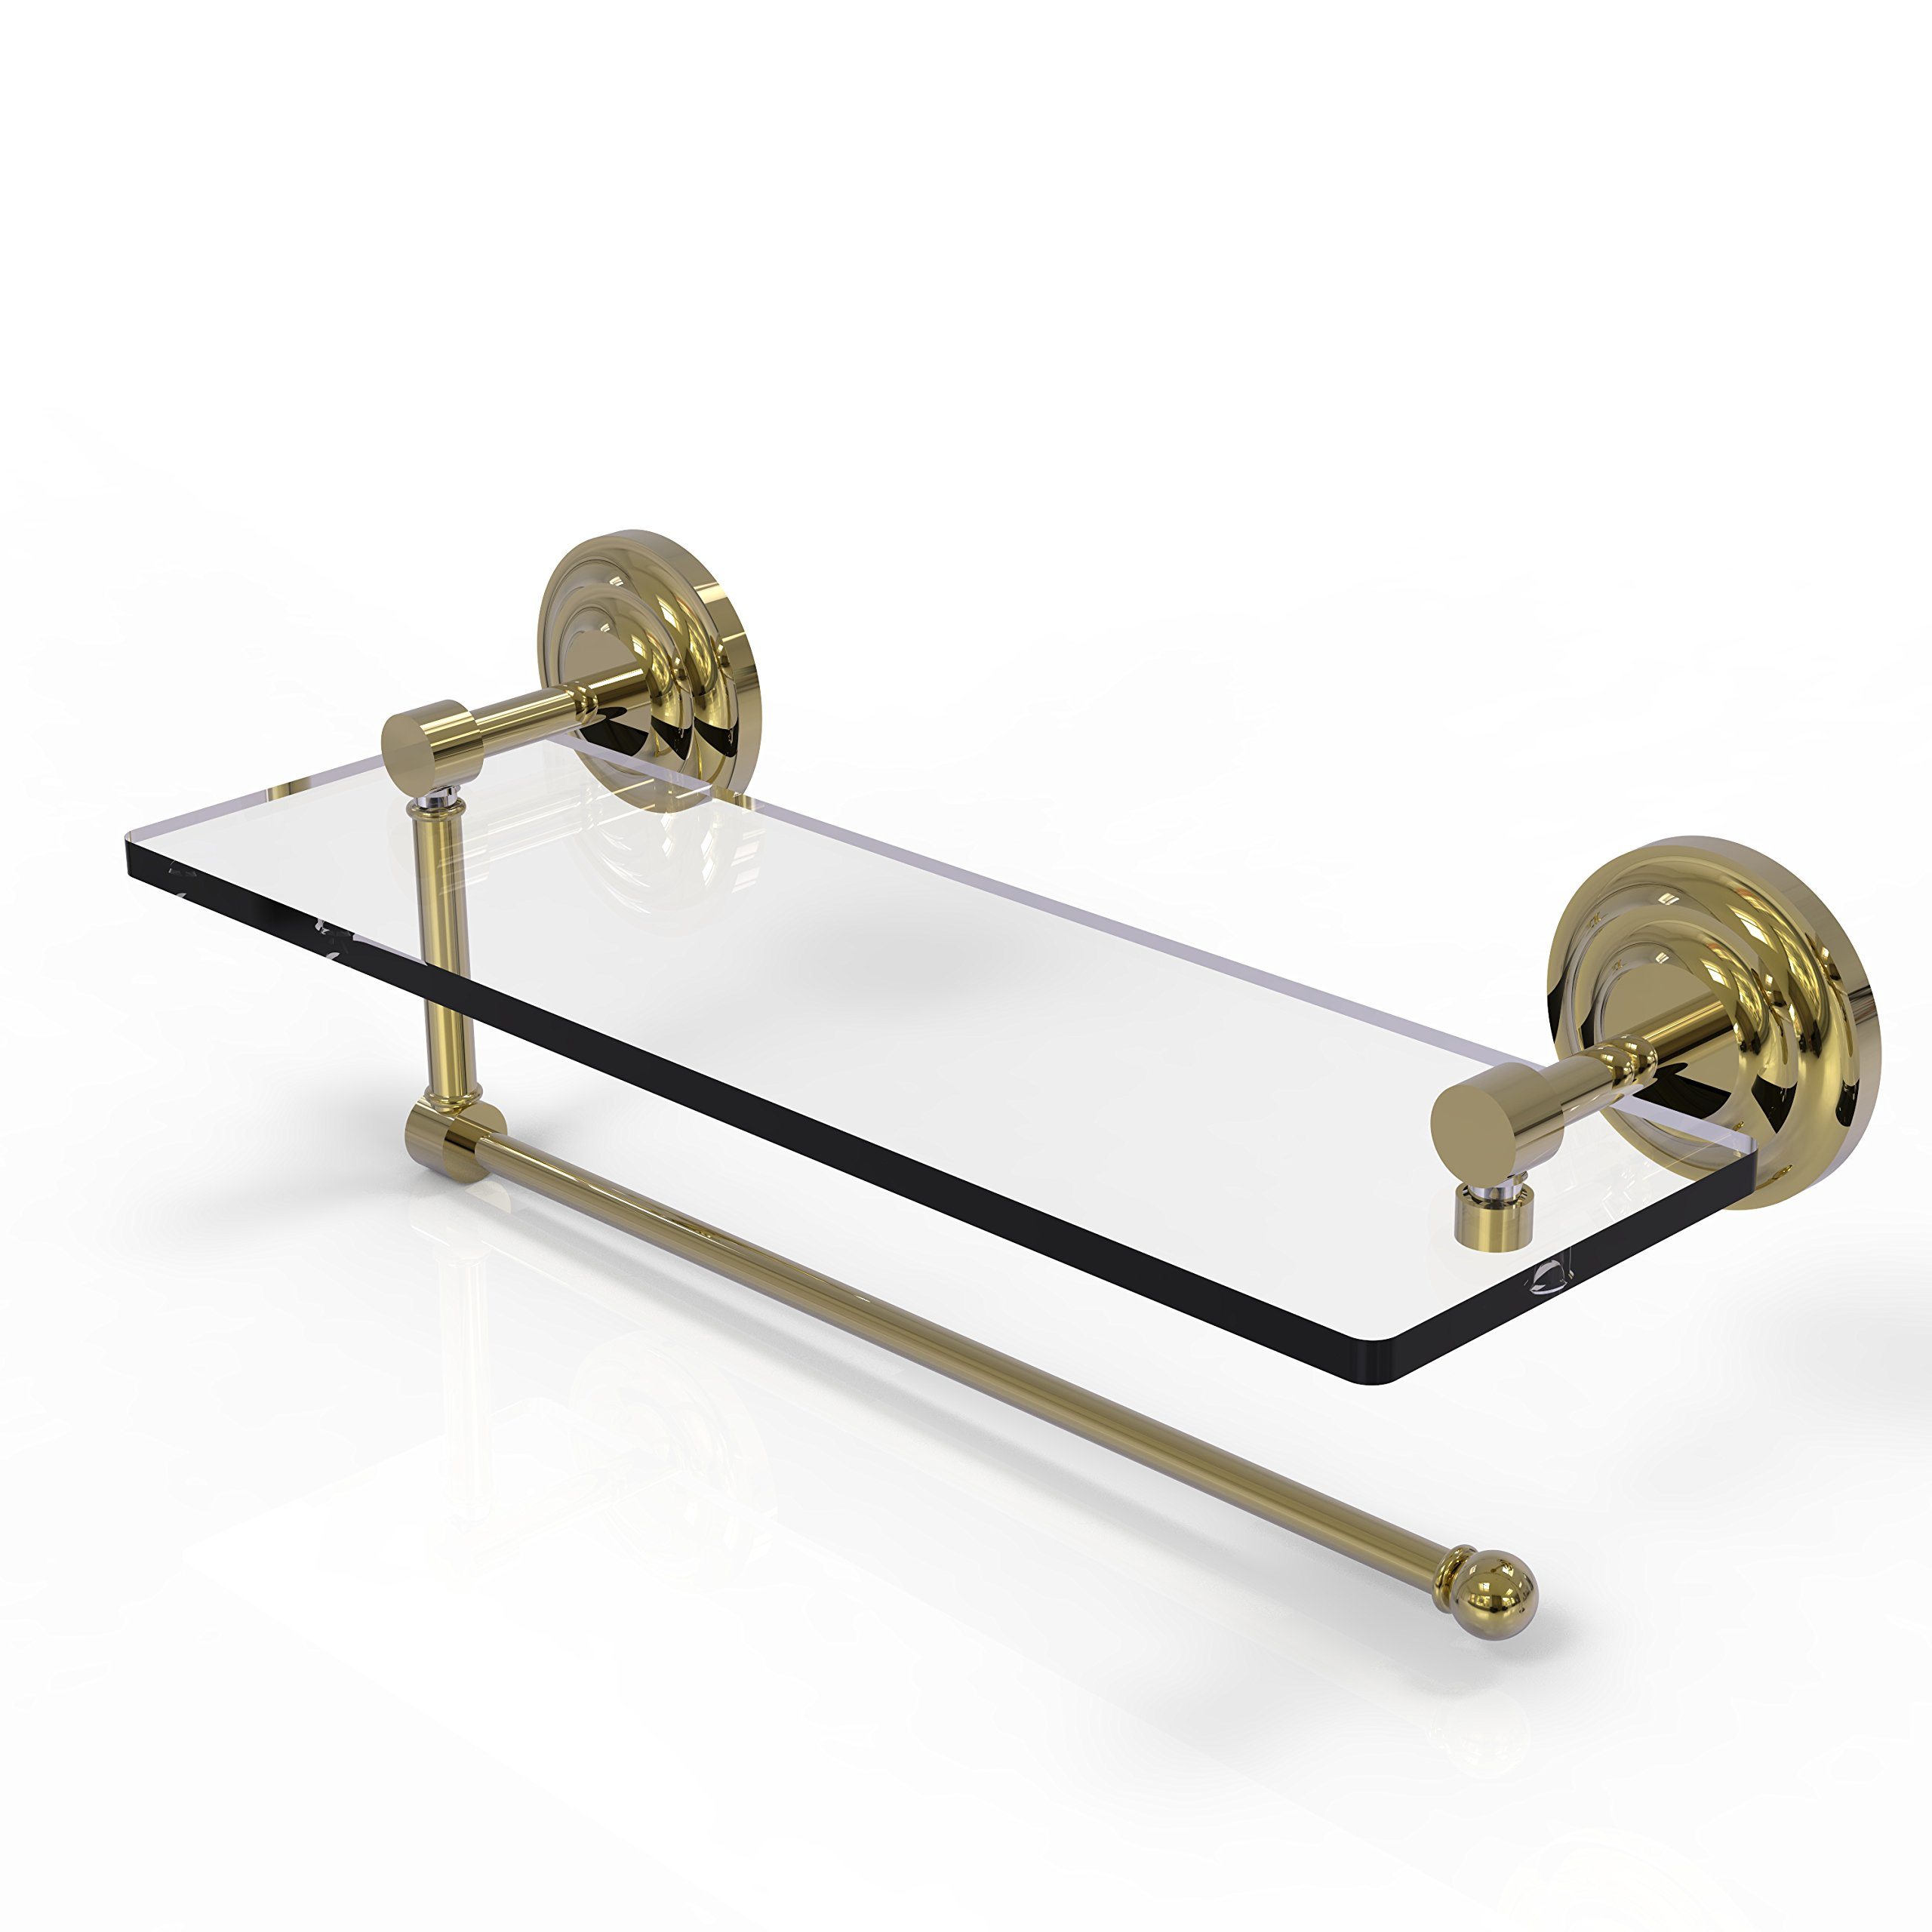 Allied Brass Prestige Que New Collection Paper Towel Holder with 16 Inch Glass Shelf PQN-1PT/16 - Unlacquered Brass